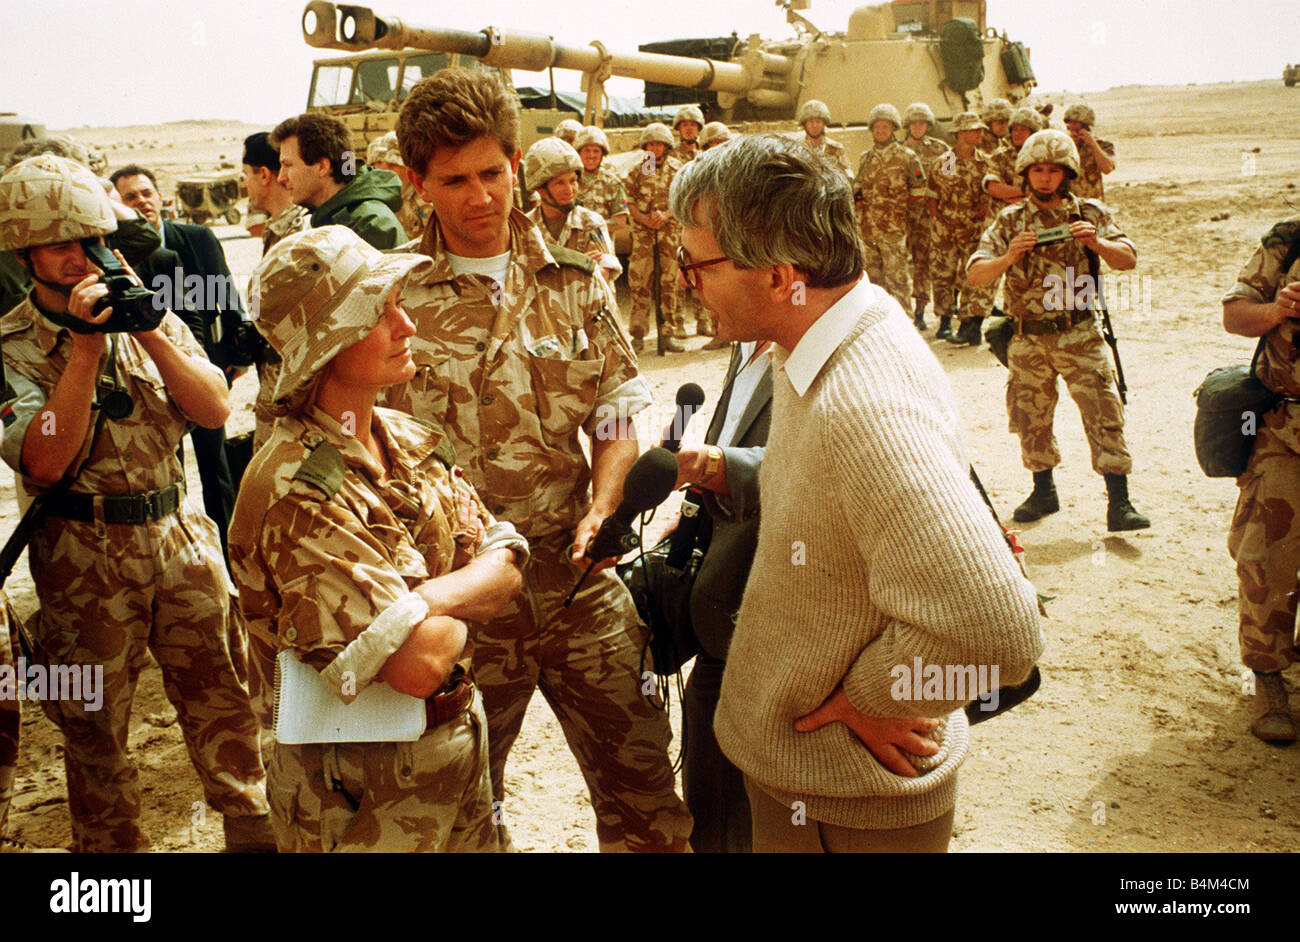 Kate Adie Television Reporter speaking to John Major at the battlefront during the Gulf War - Stock Image